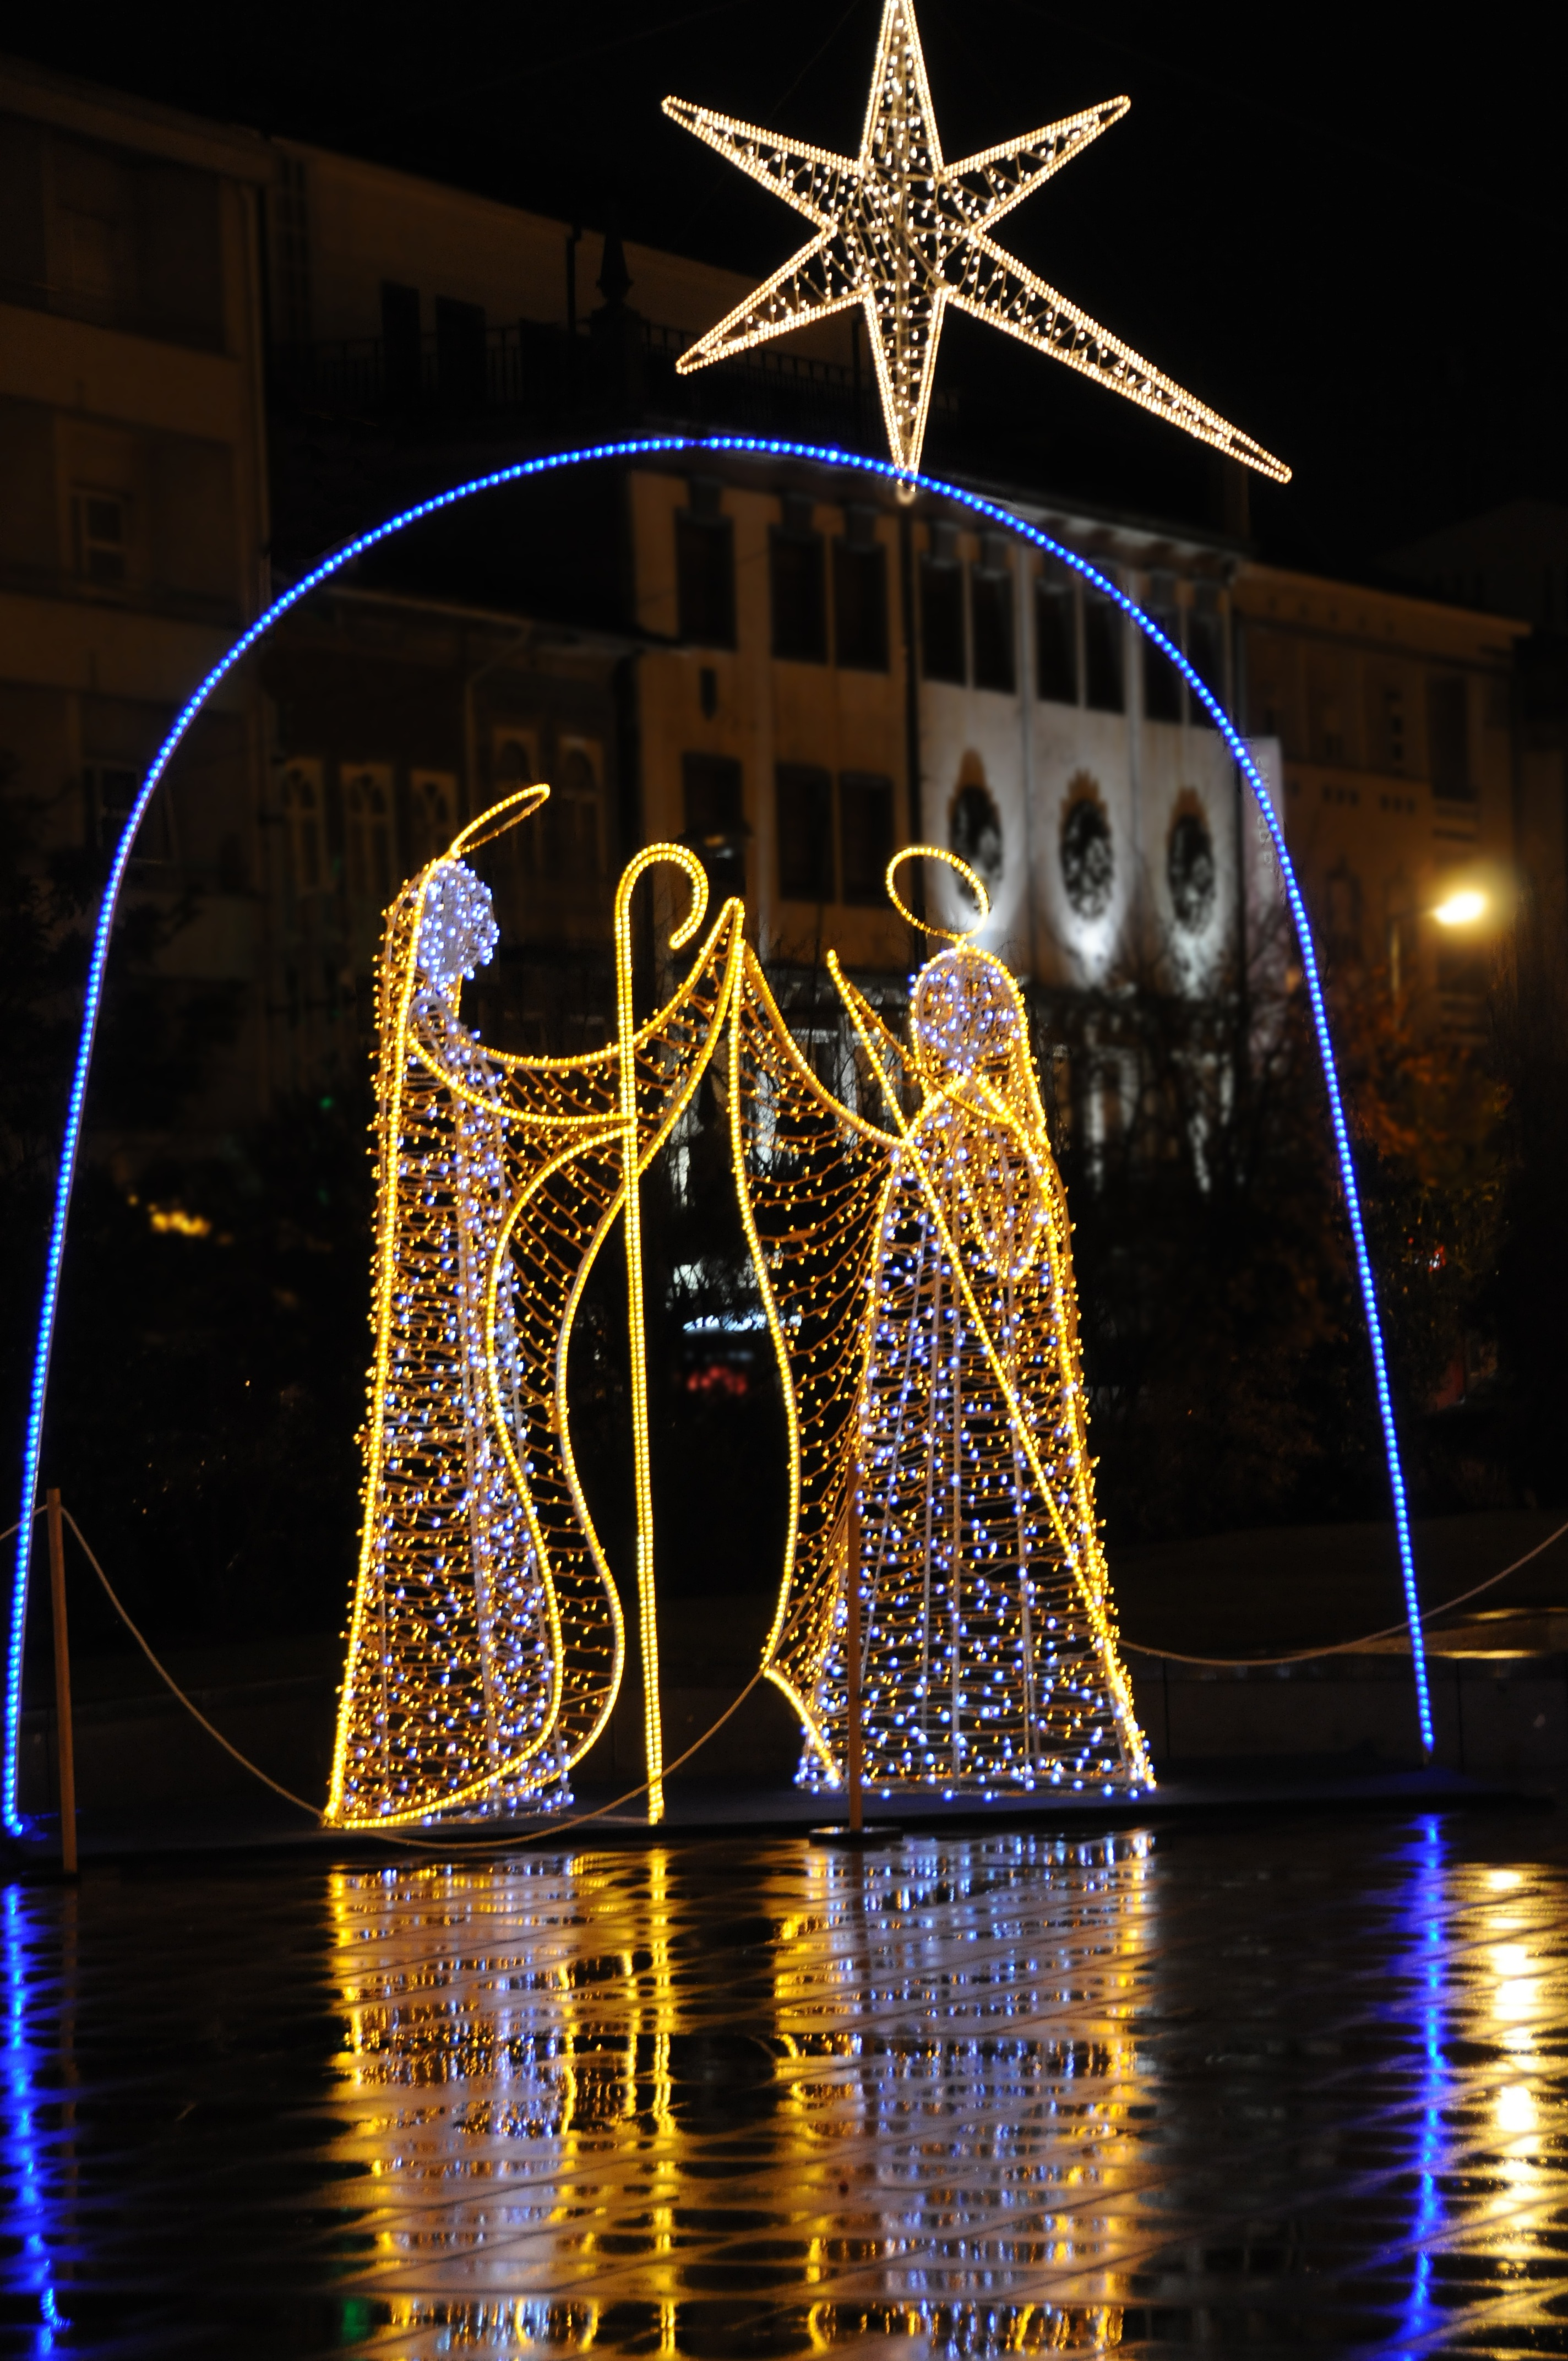 File:Christmas decorations in Braga.JPG - Wikimedia Commons